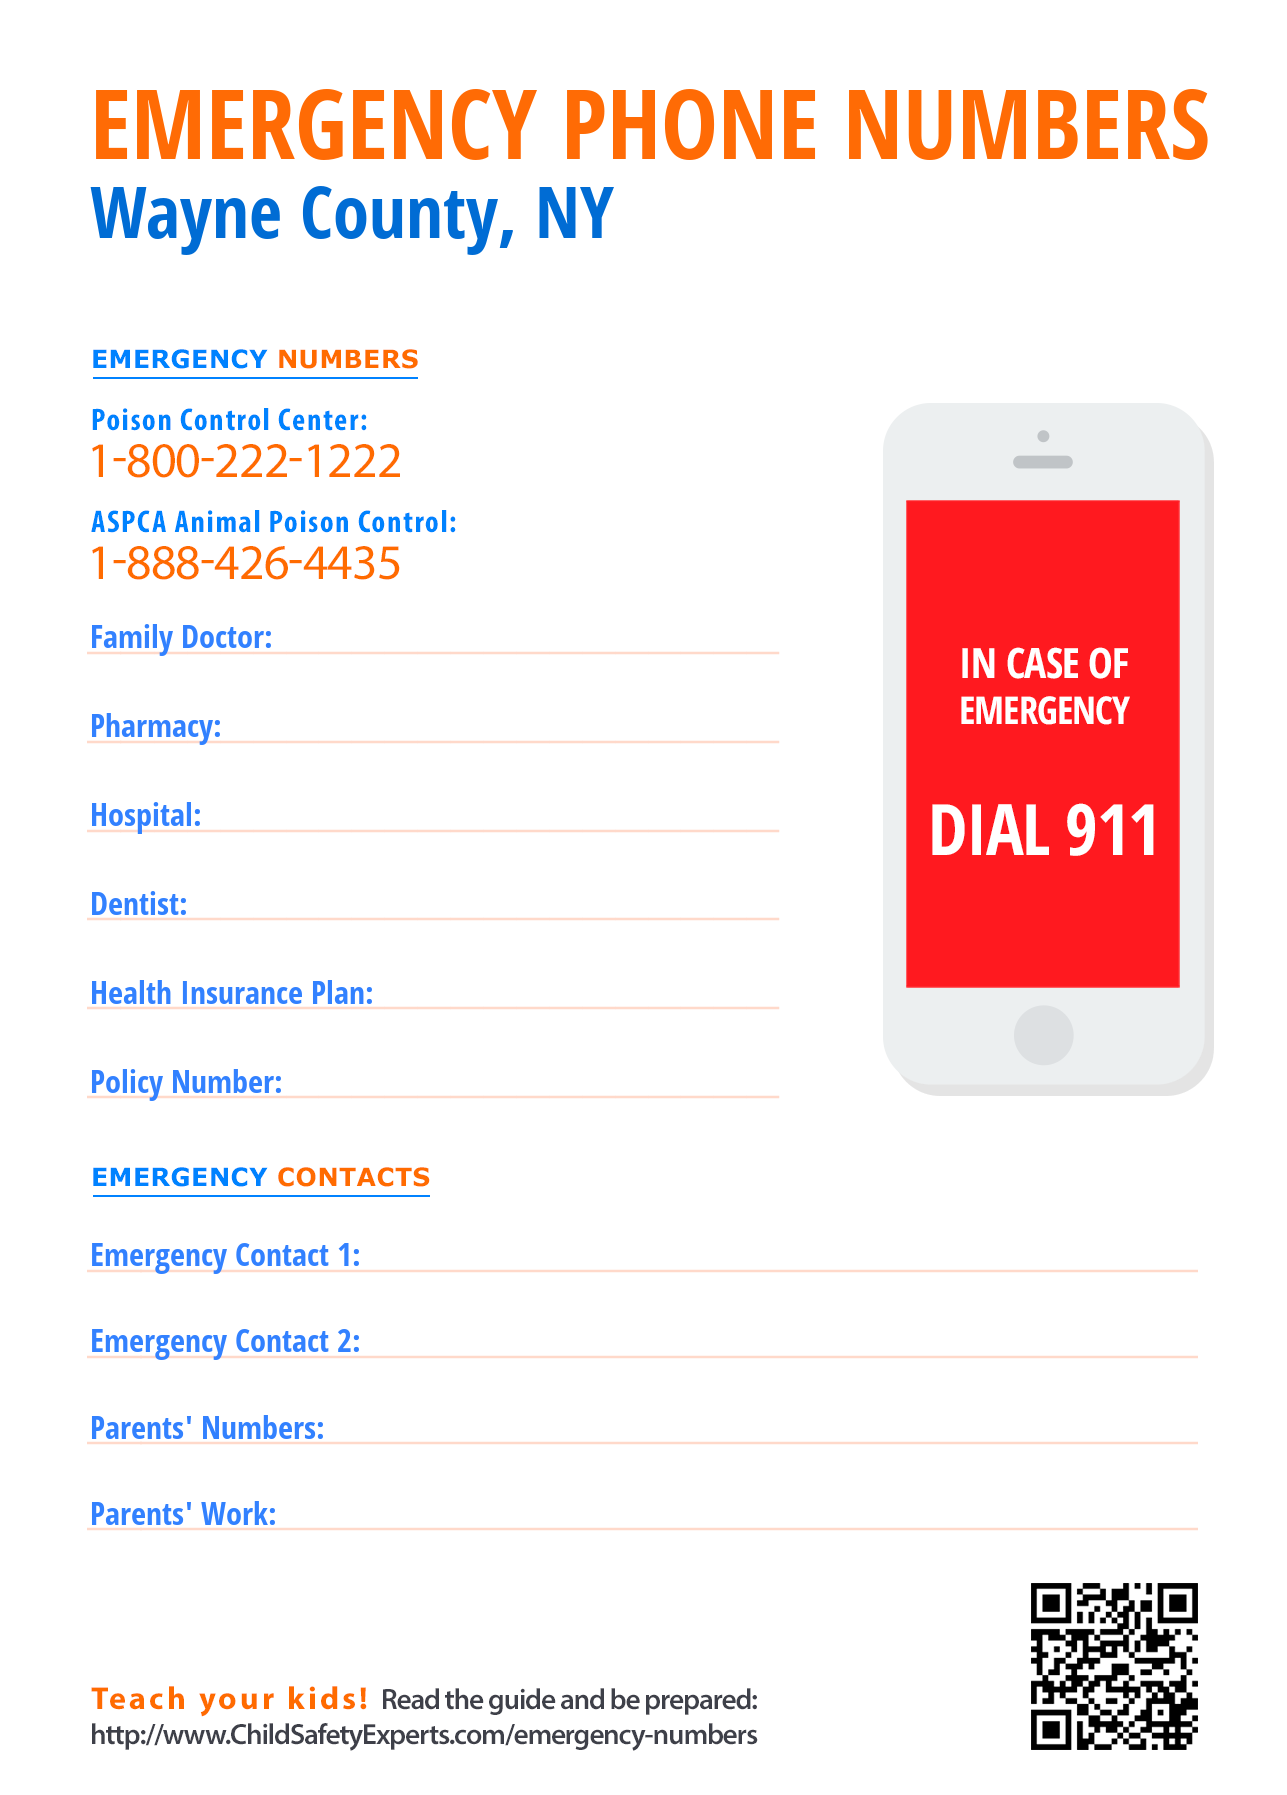 Important emergency phone numbers in Wayne County, New York